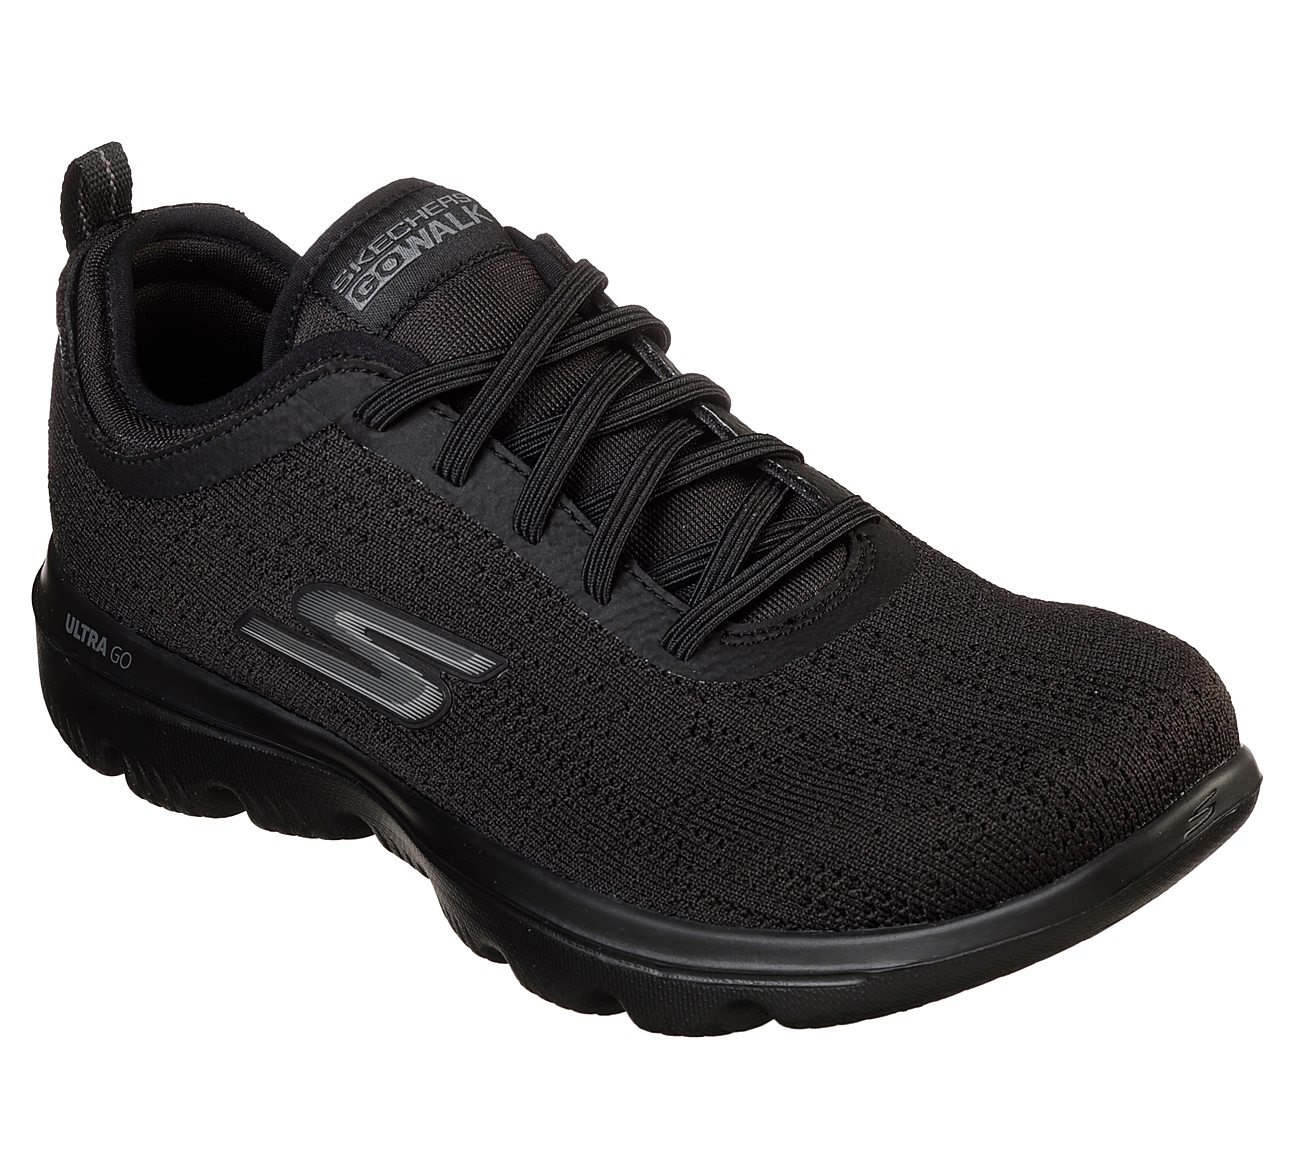 Skechers GOwalk Evolution Ultra - Mirable